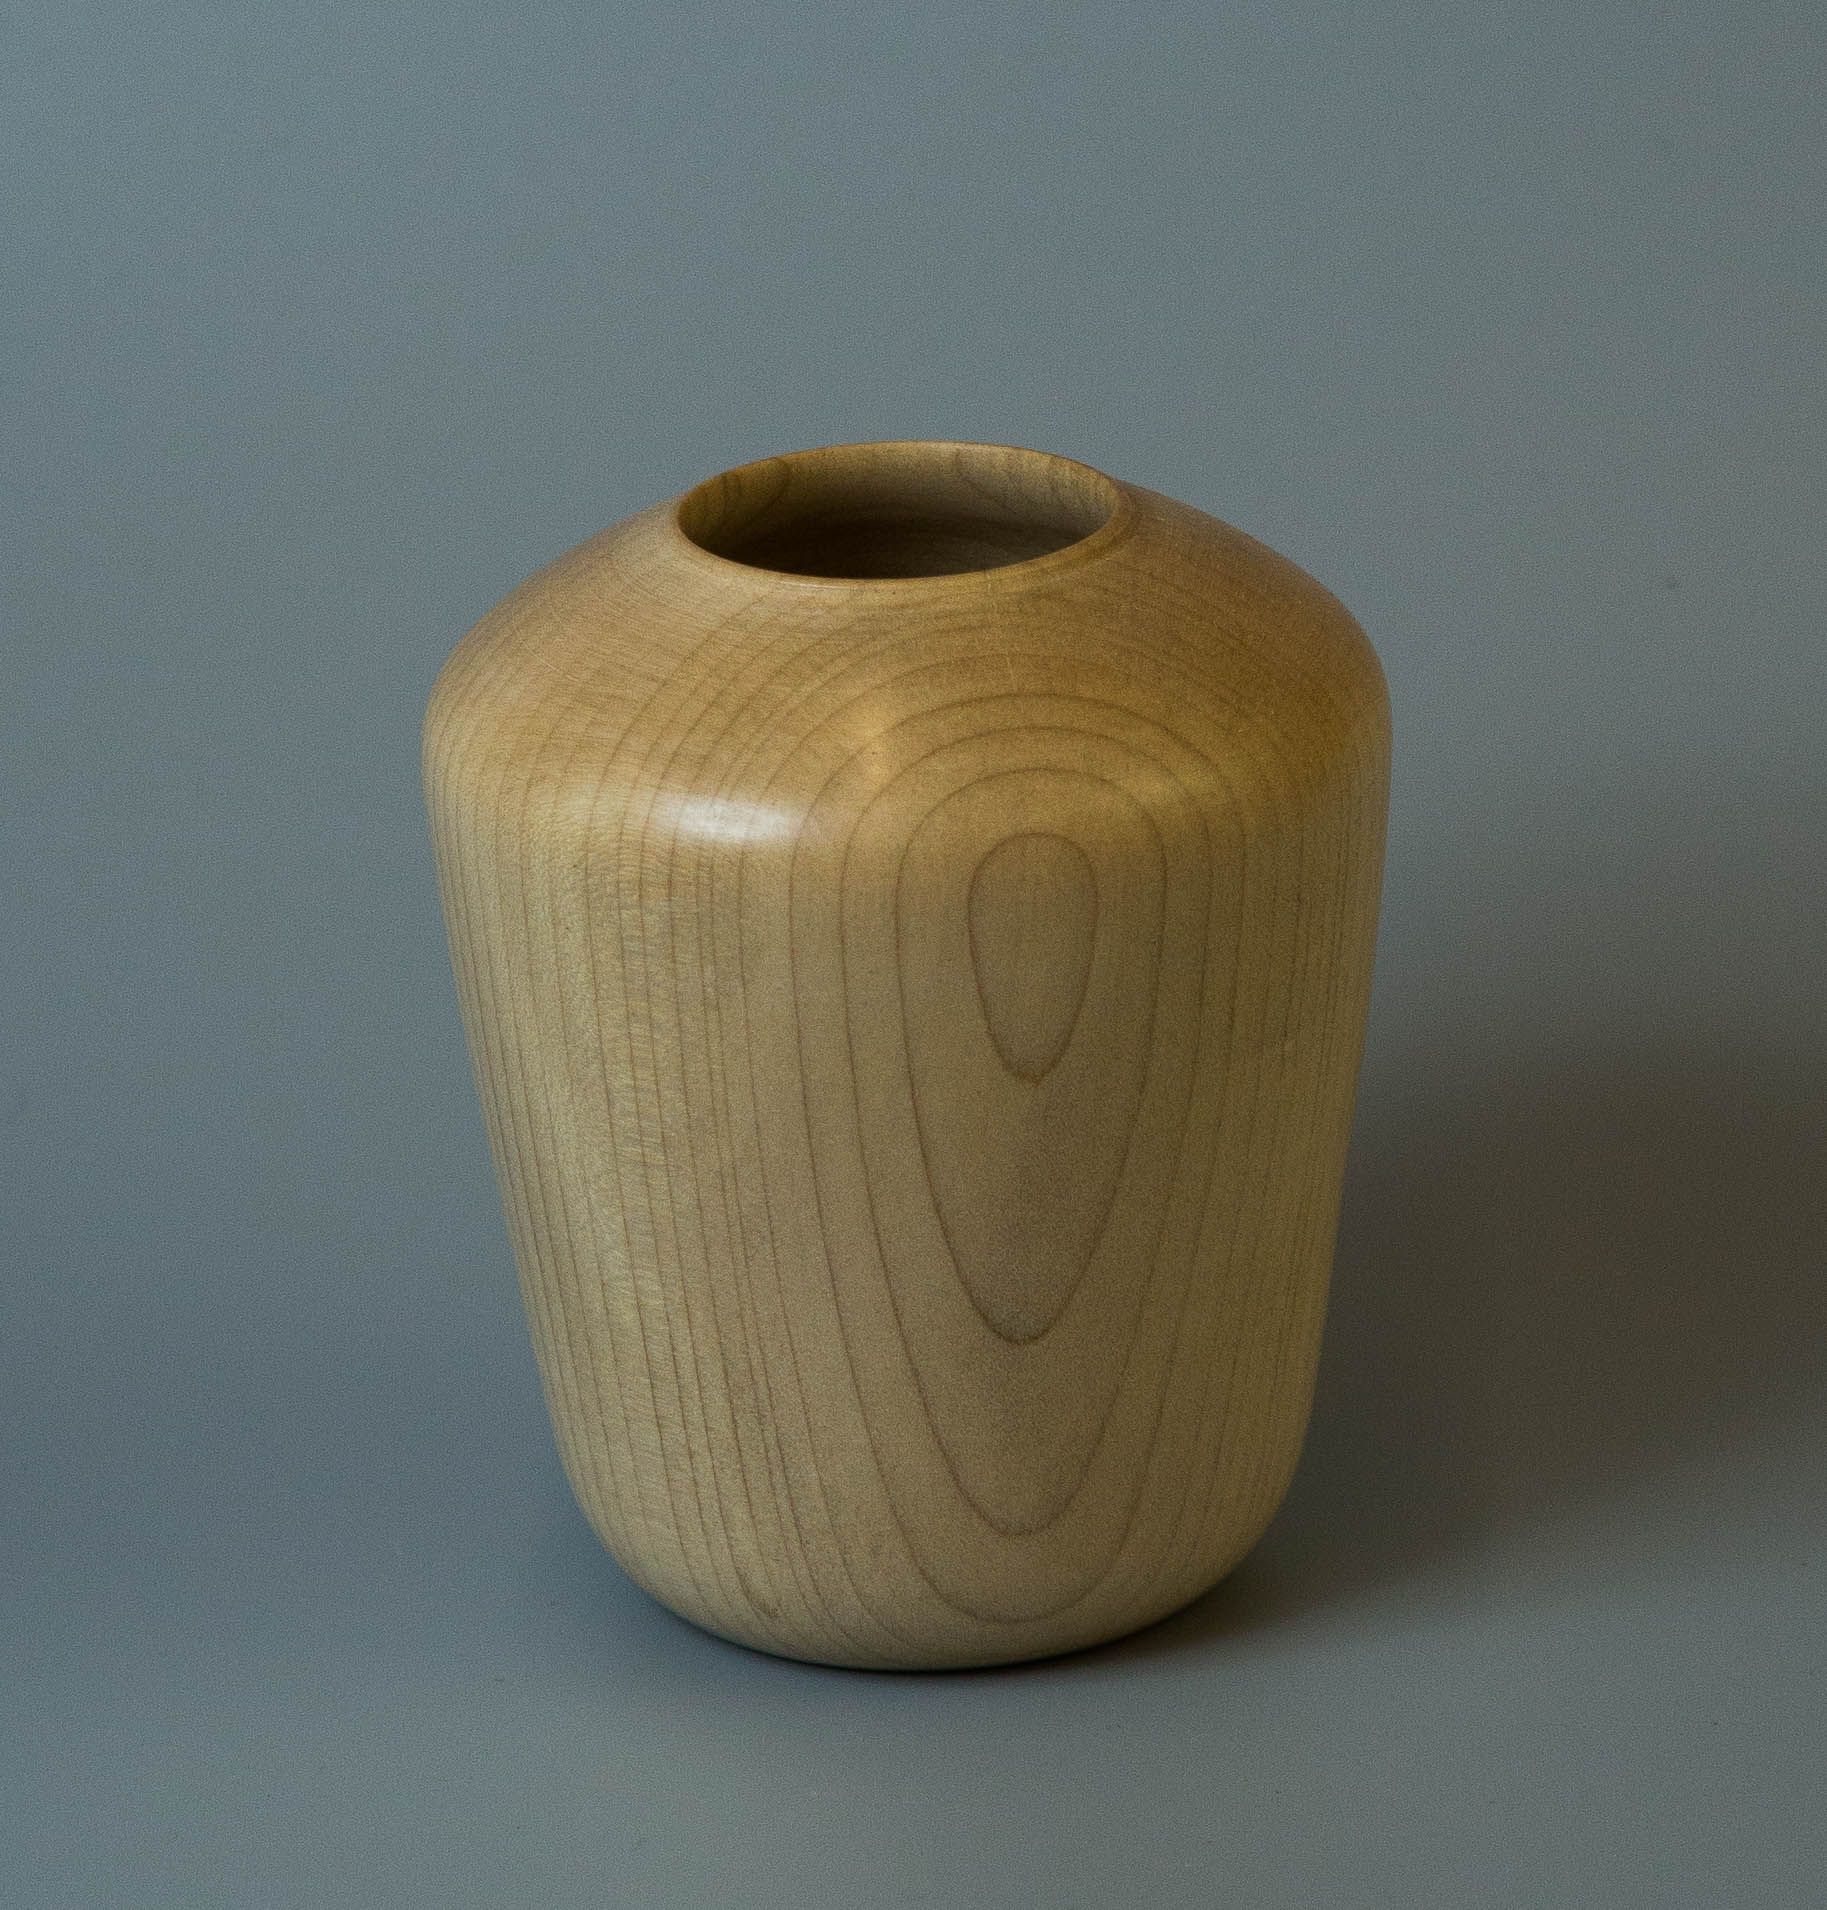 Small Hollow Form / Vase by Harry Butcher